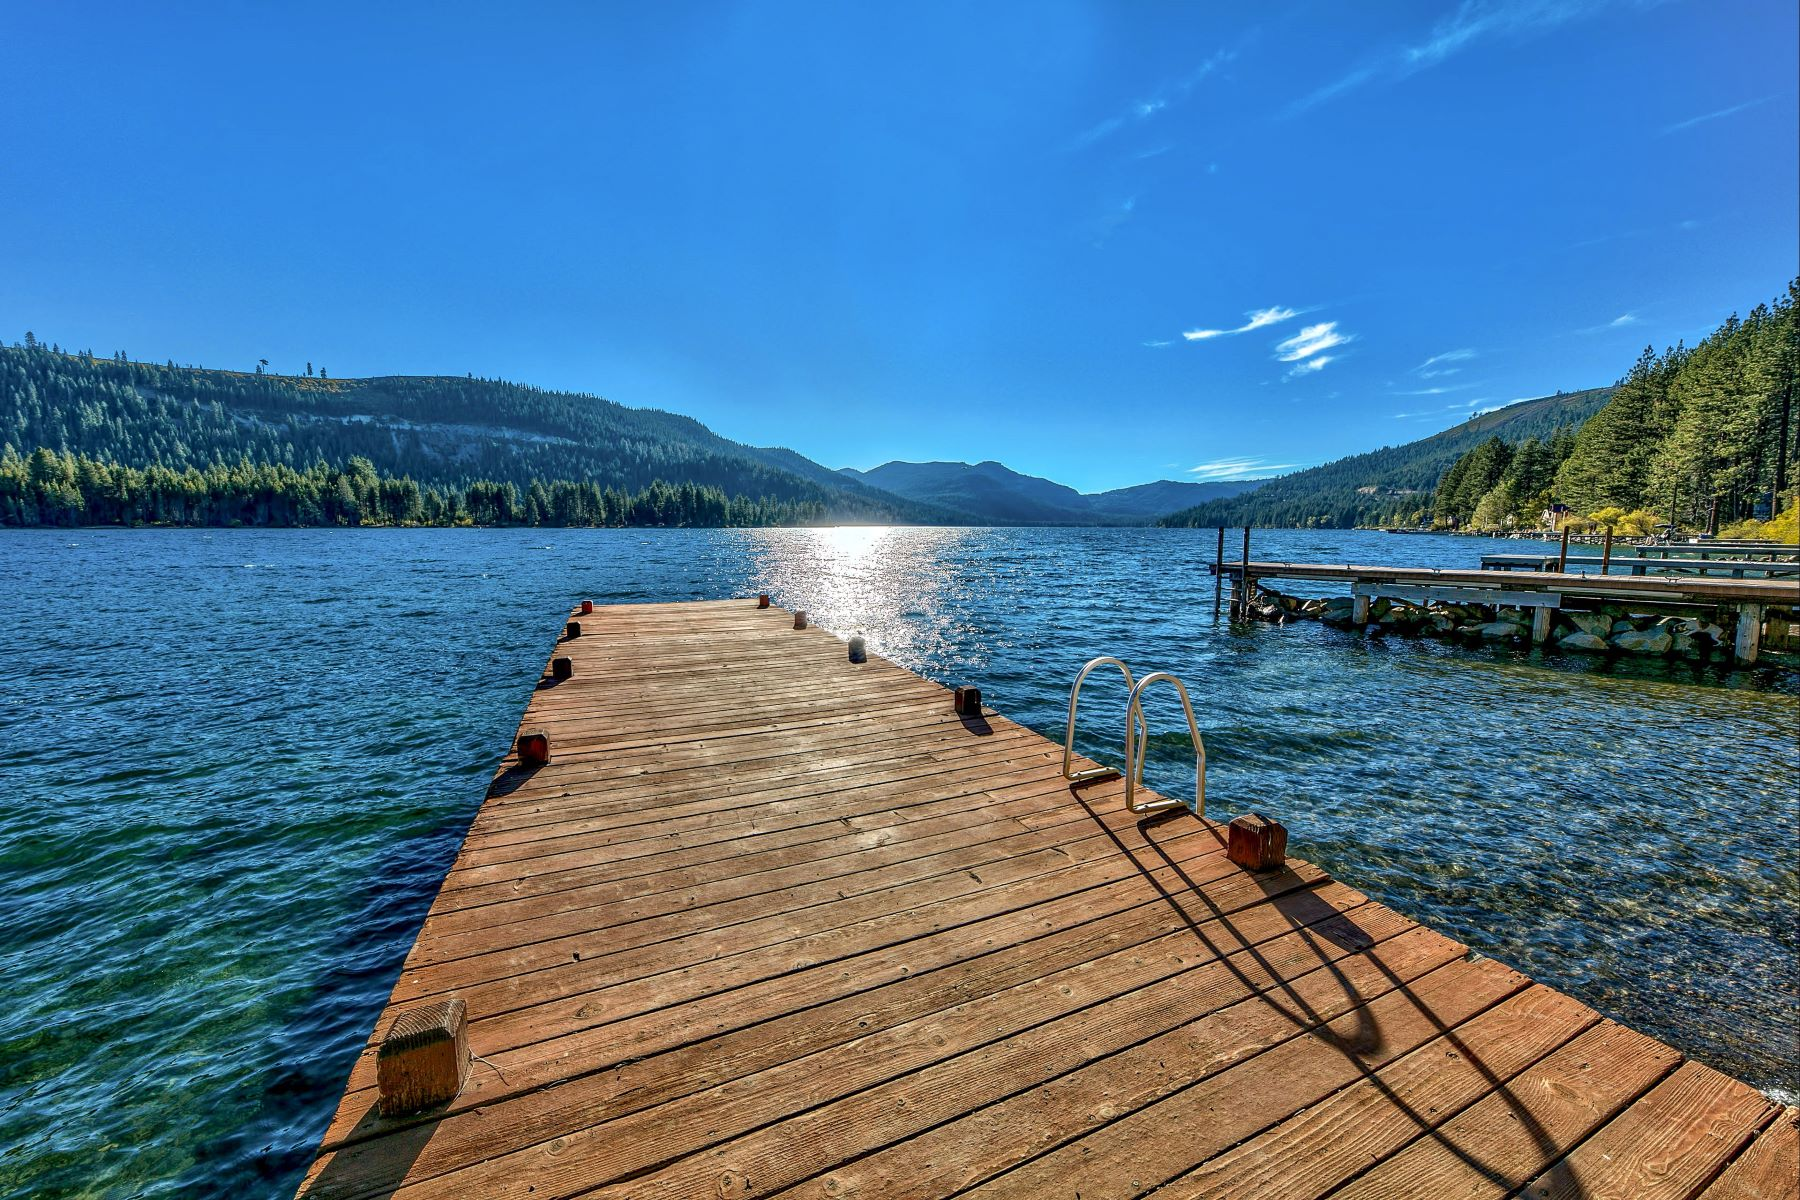 Property for Active at Donner Lake Beach House 13099 Donner Pass Road Truckee, California 96161 United States